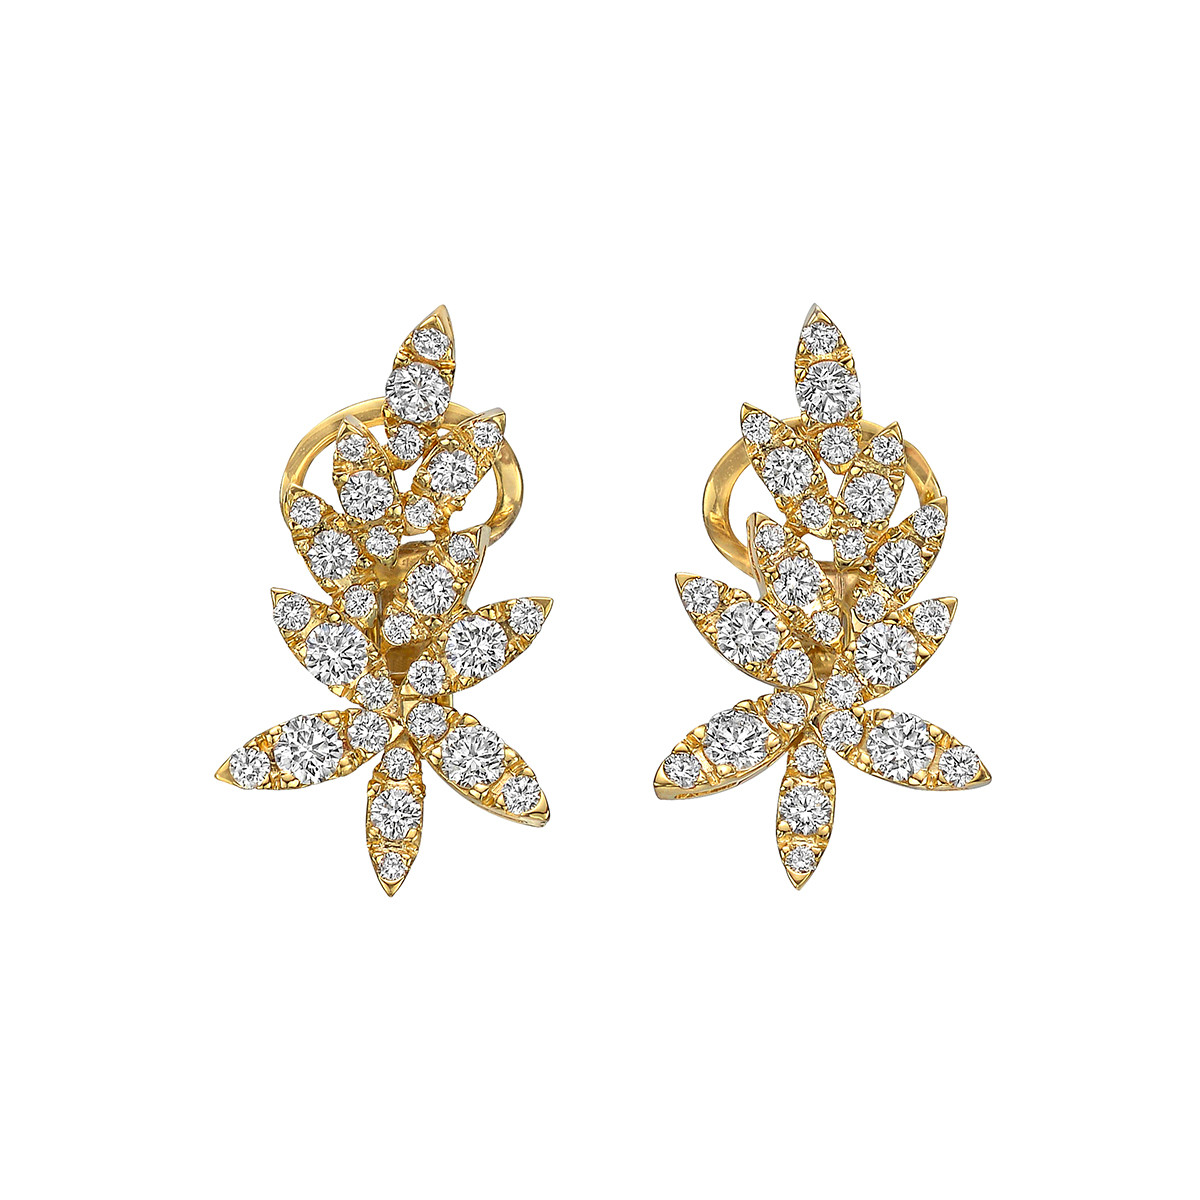 18k Yellow Gold & Diamond Spray Earrings